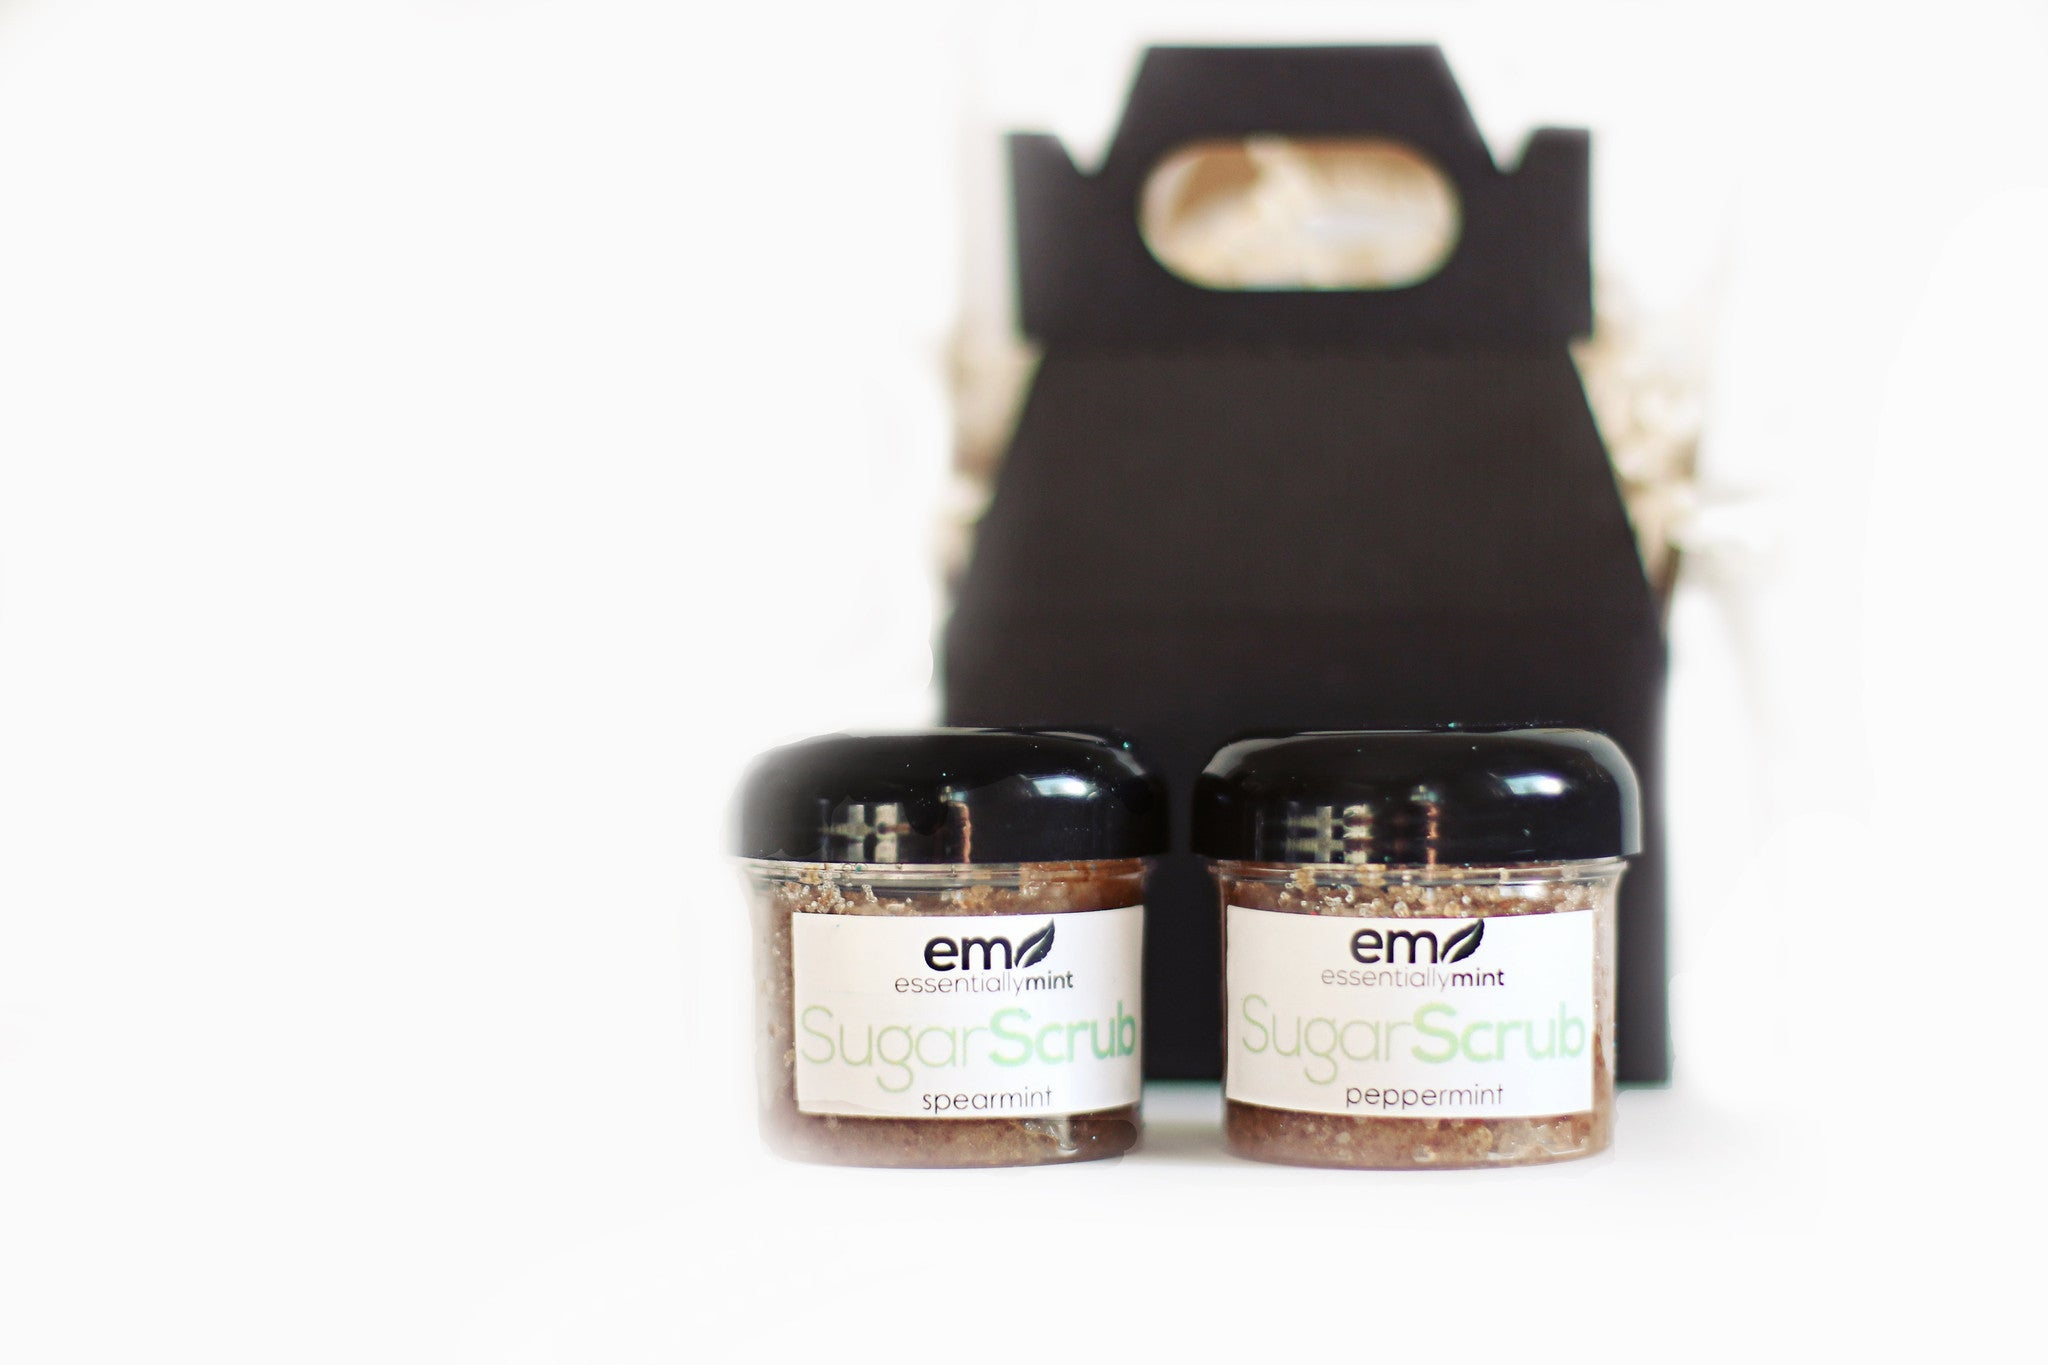 Mini Spa Gift Set With Sugar Scrubs Essentiallymint Spa Gift Boxes And Natural Skin Care